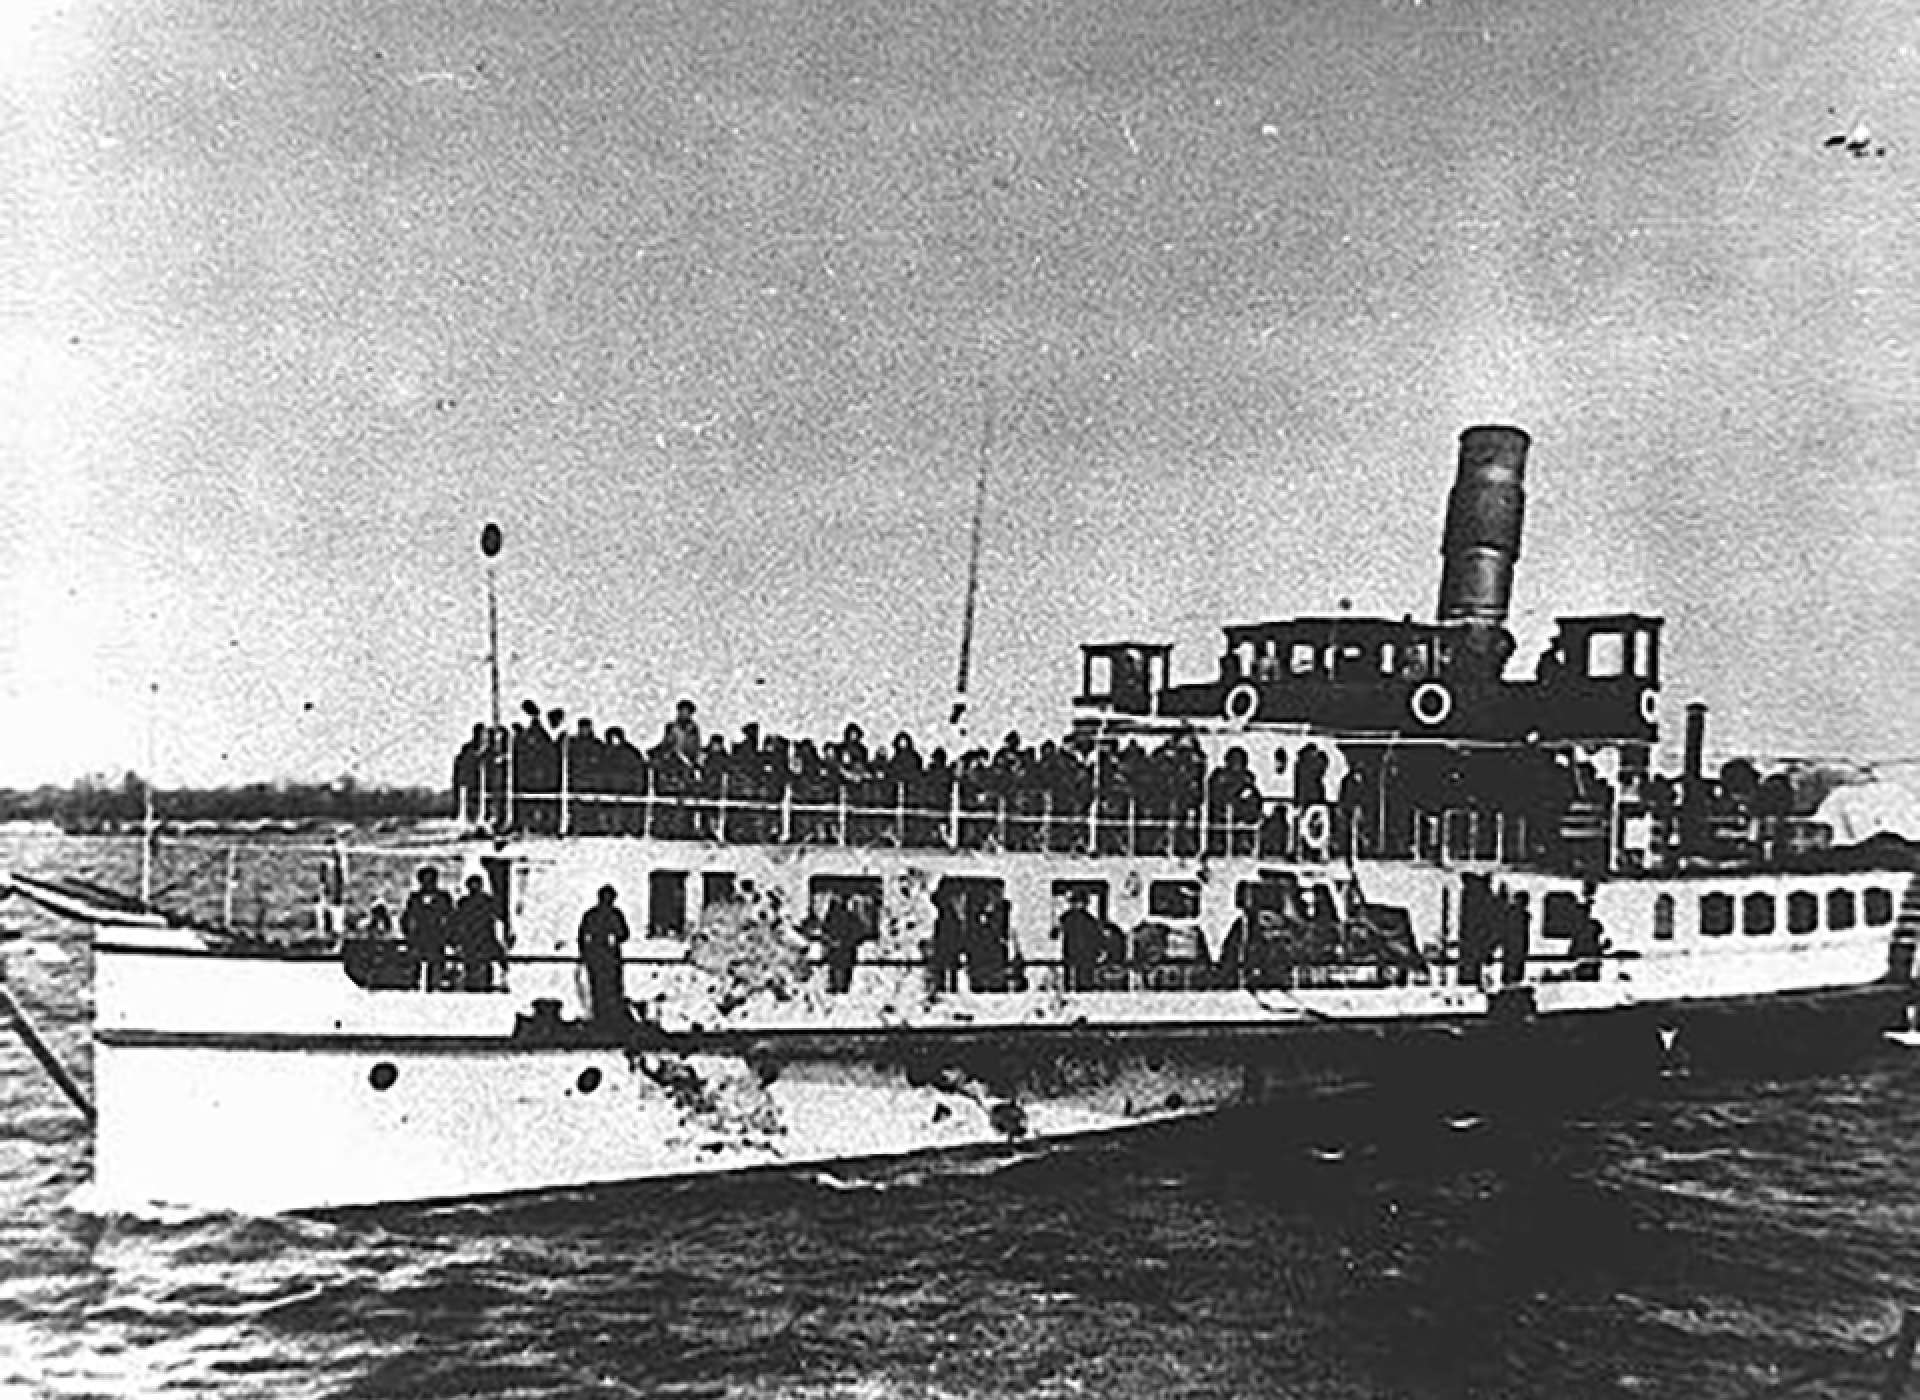 Deportation Ship Removing Jews from Bulgarian-Occupied Territory, March 1943. Eventually they would be sent to the Treblinka Death Camp. Courtesy of Jewish Historical Museum, Belgrade.